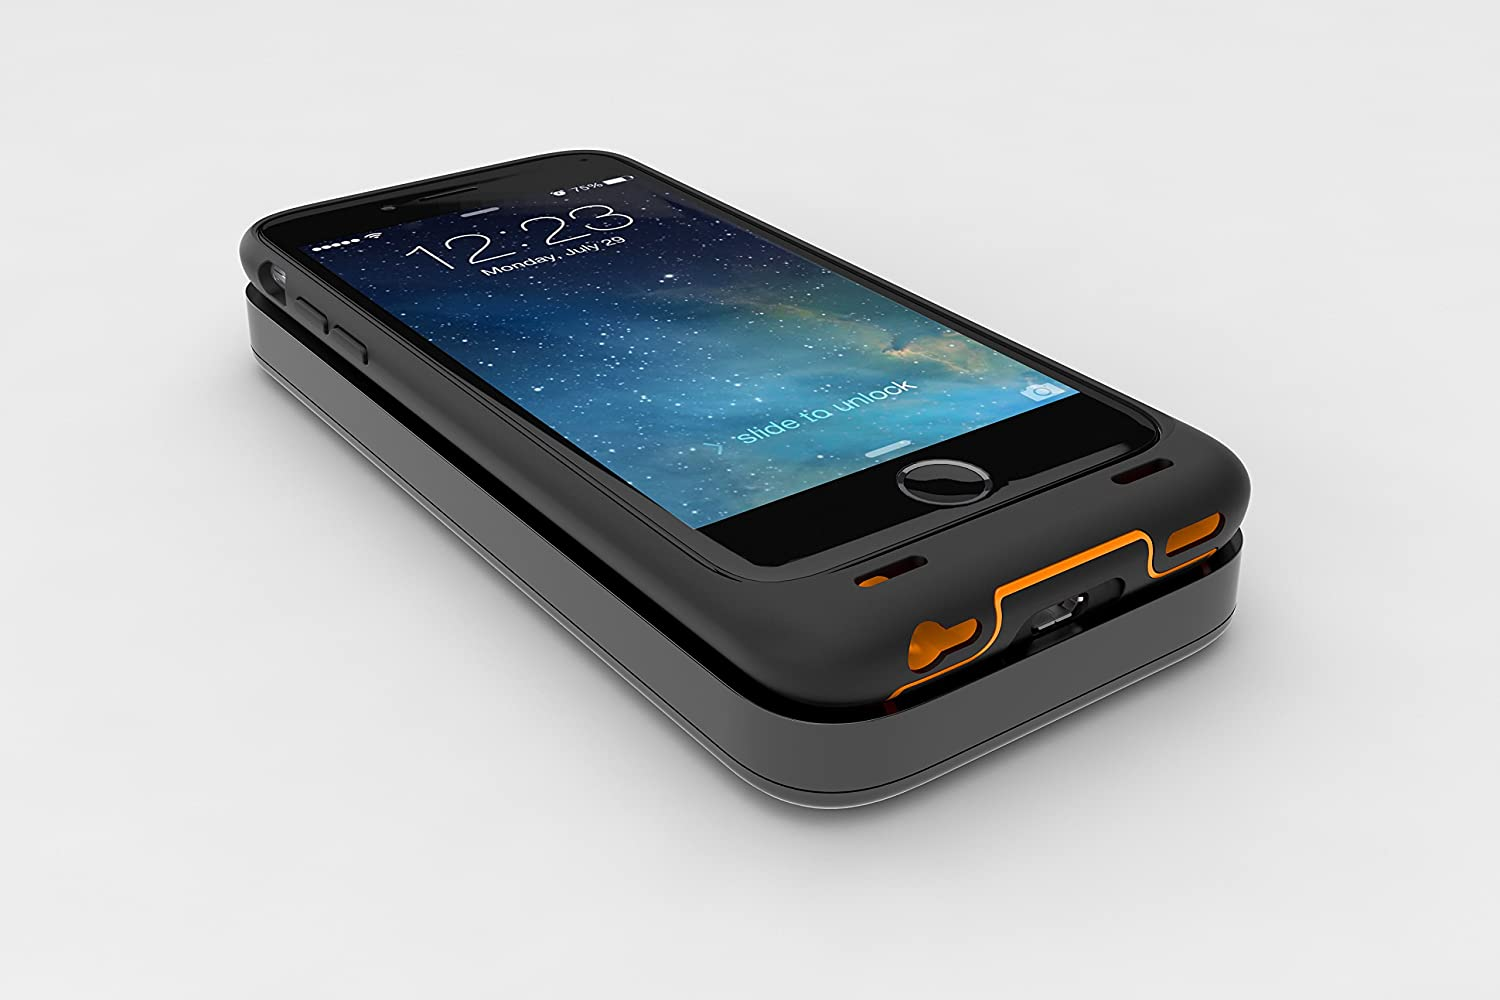 Dog /& Bone Backbone Starter Pack Wireless Charging iPhone 6 Black /& Orange iPhone 6s case with Wireless Charge Pad